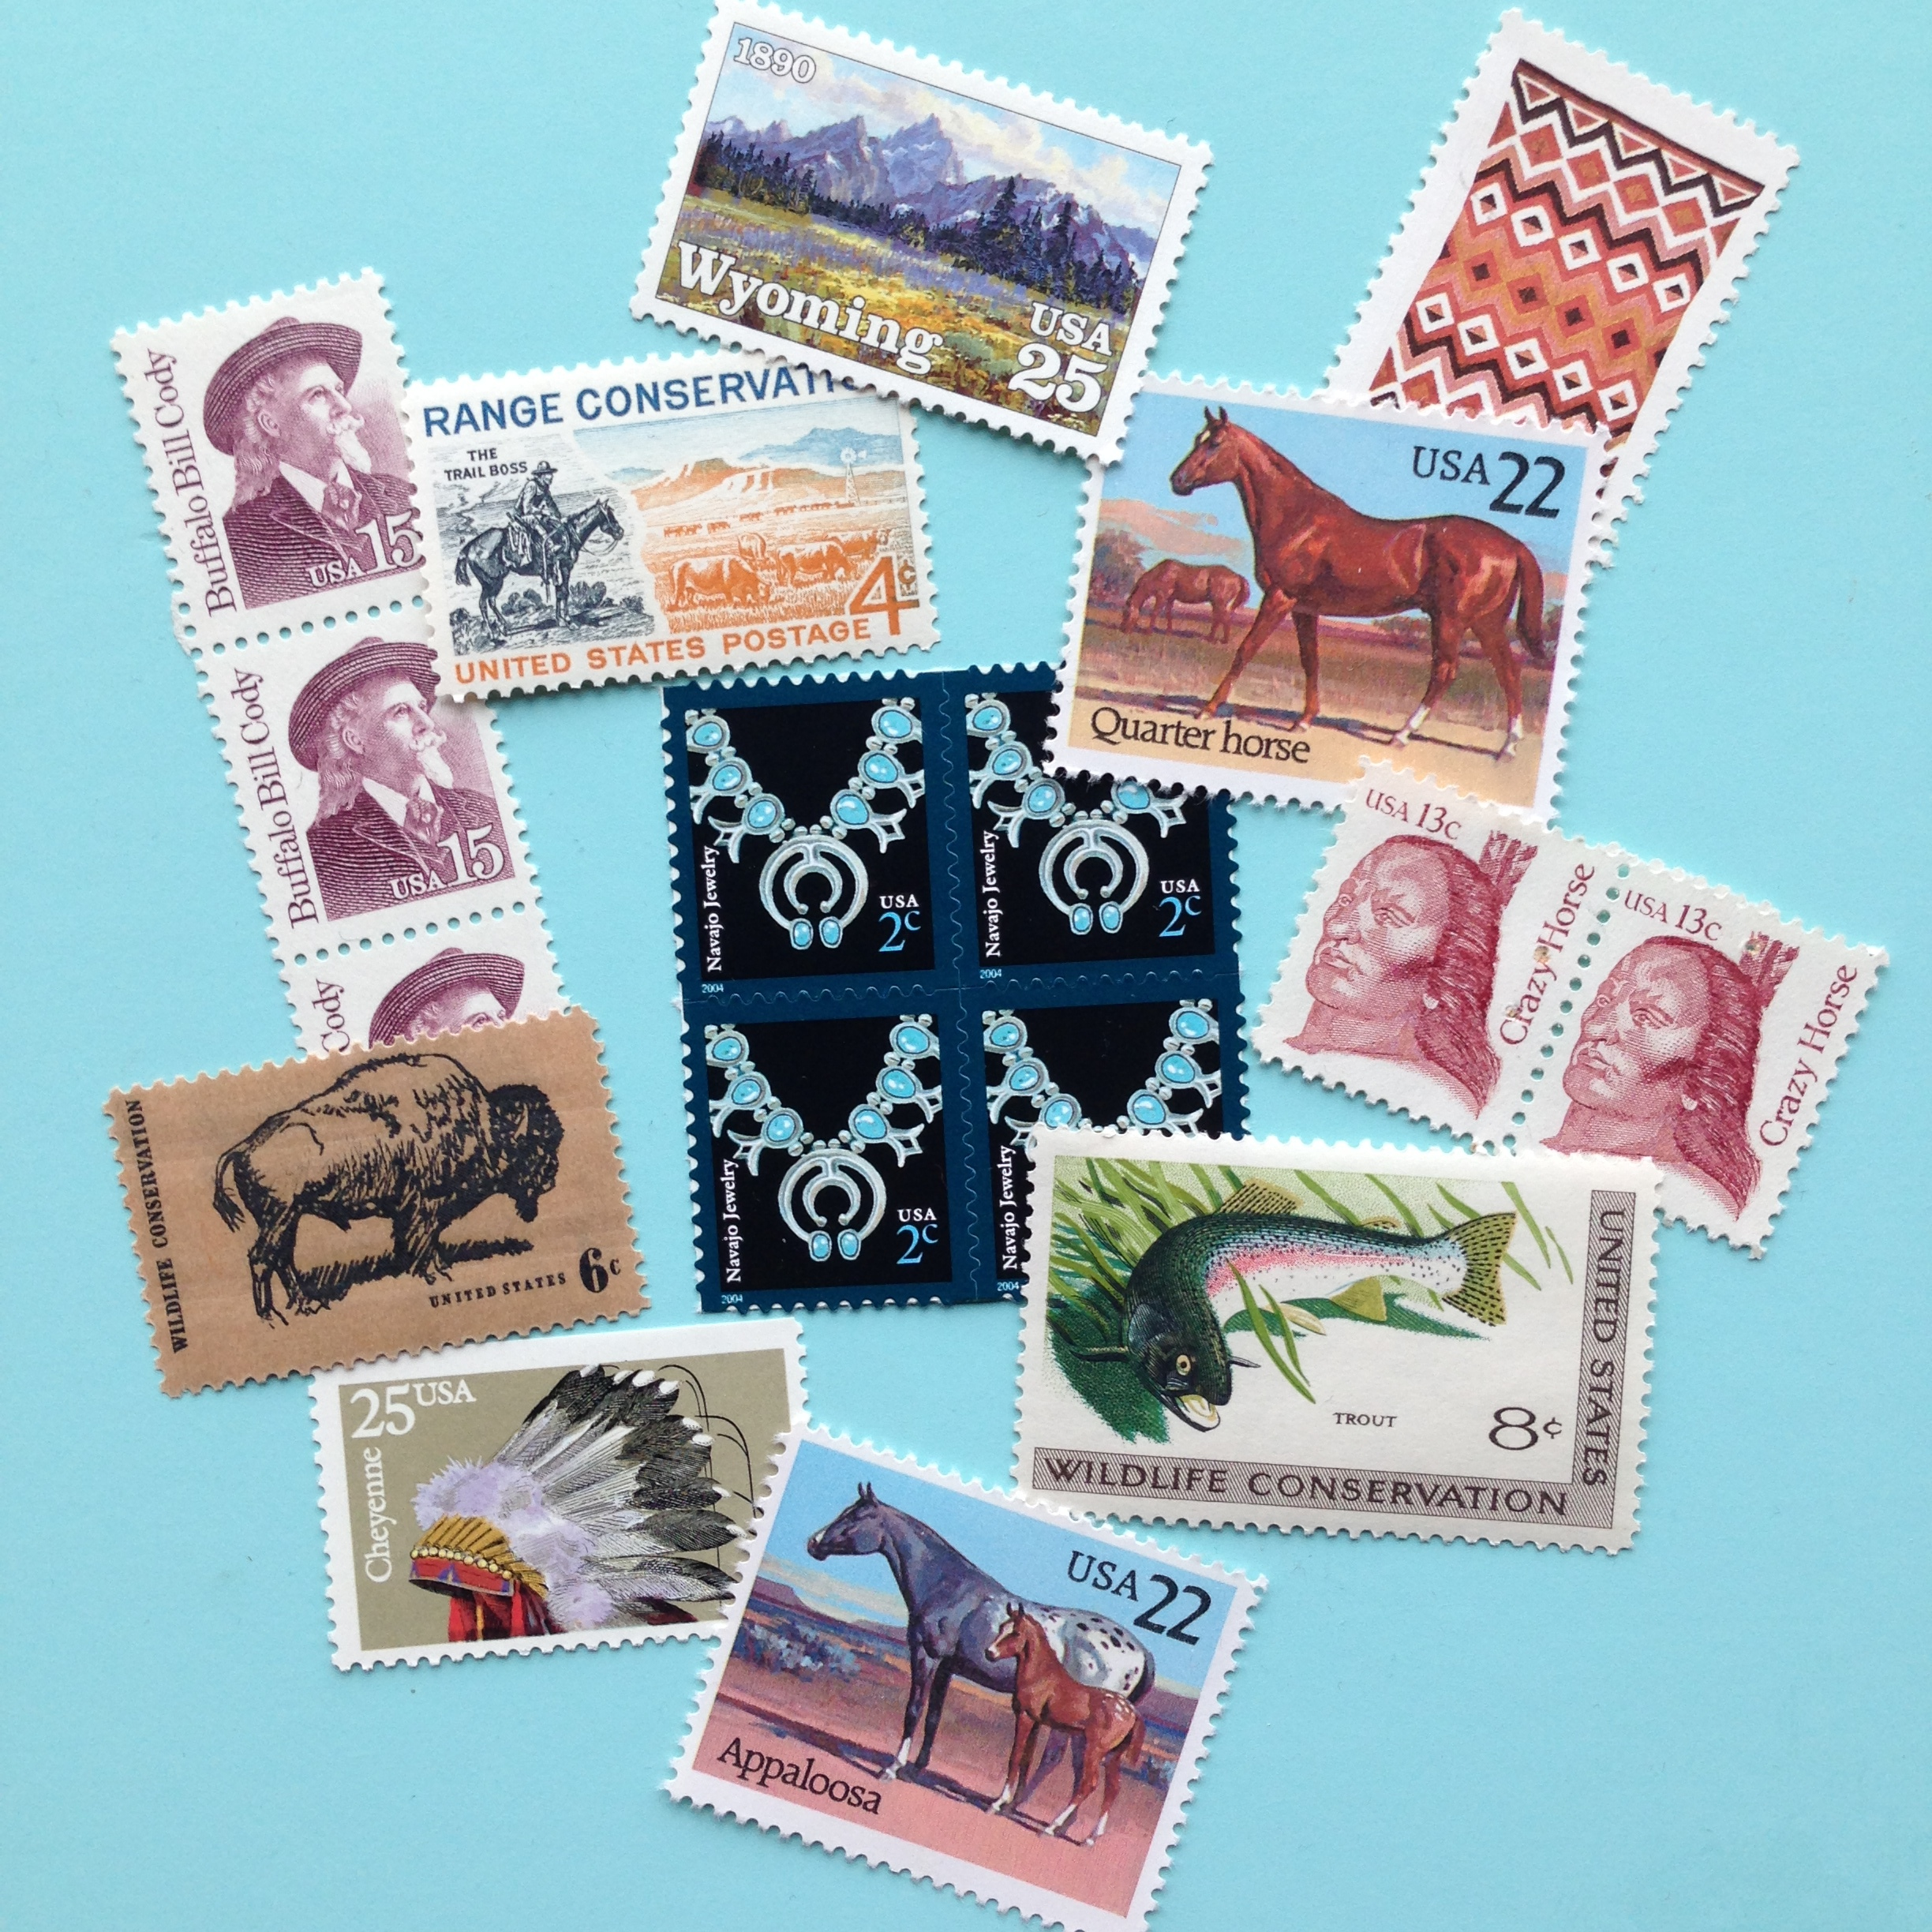 Some of the stamps I collected for our wedding invitations - picked for their thematic relevance to our Cody, WY wedding.